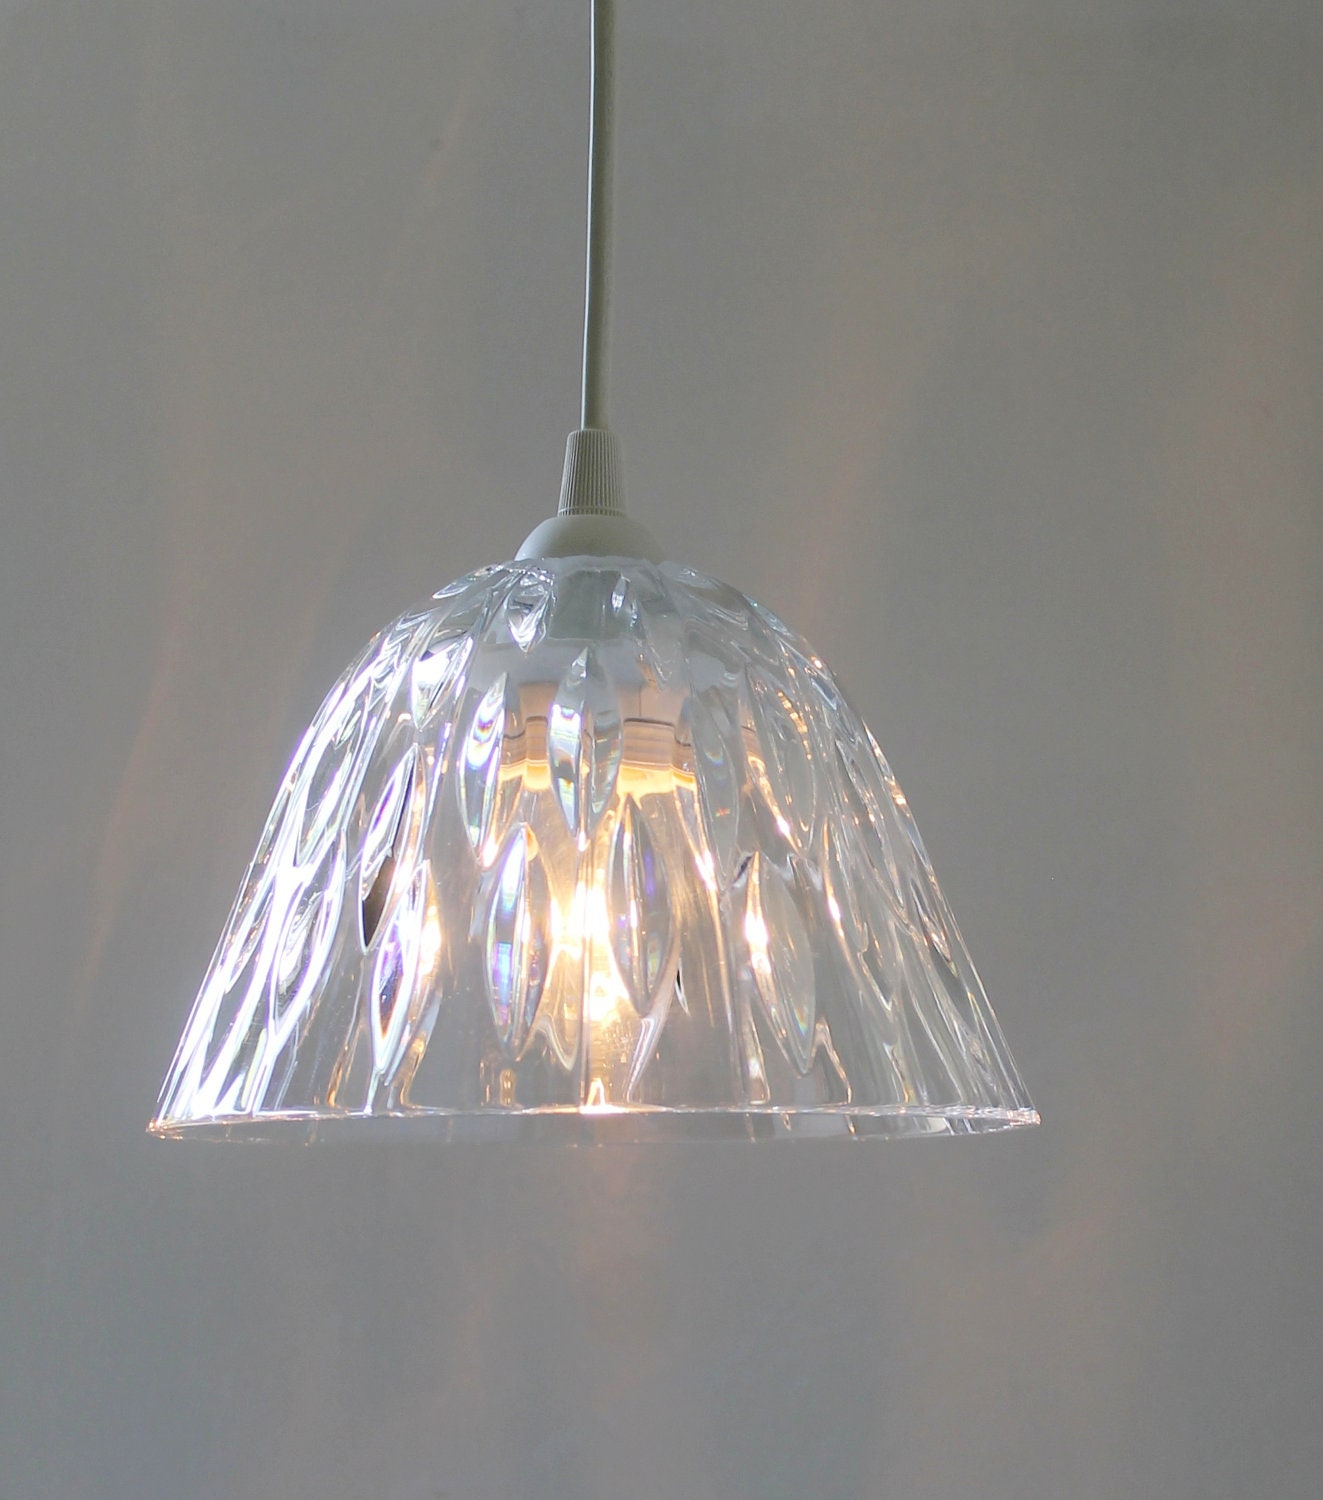 Crystal Light Hanging Pendant Lighting Fixture Upcycled